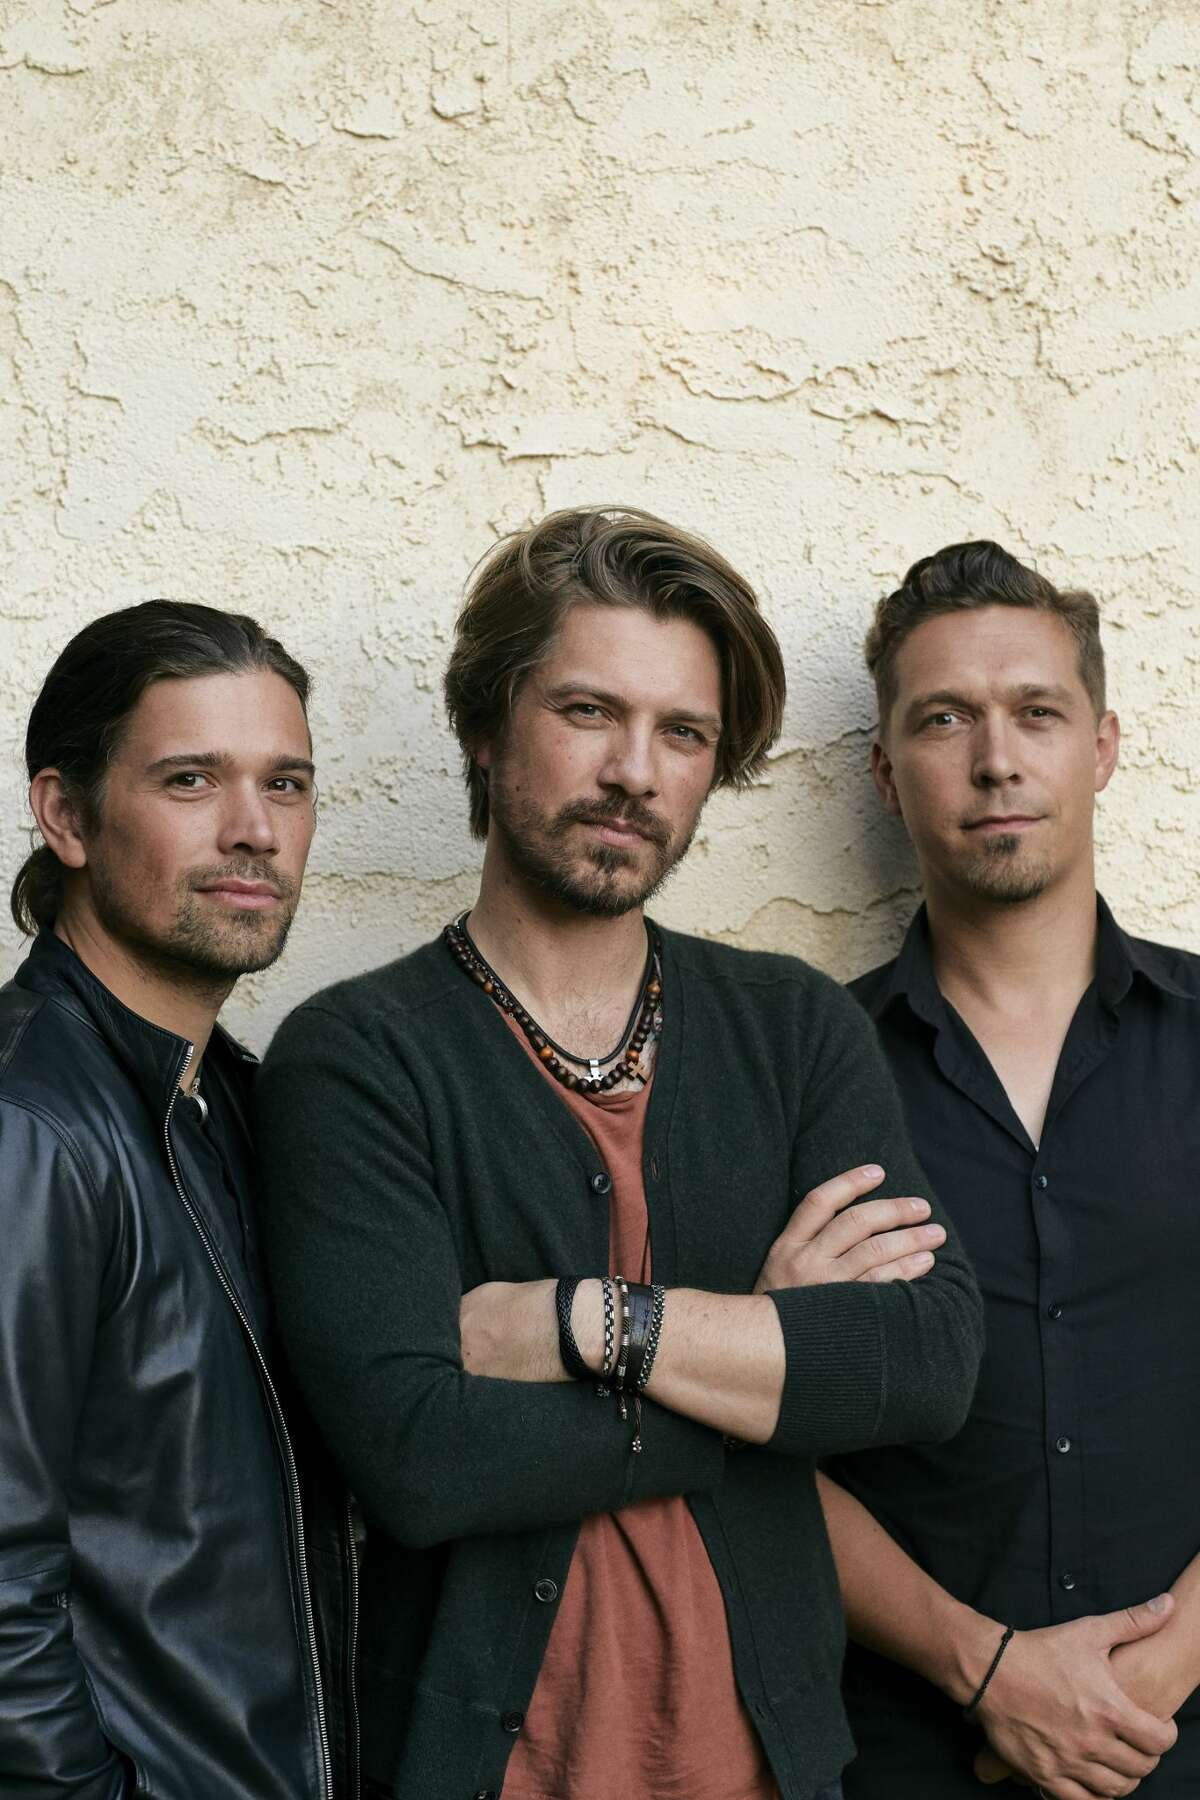 Hanson Sept. 14 at 8pm at Court of Honor Stage